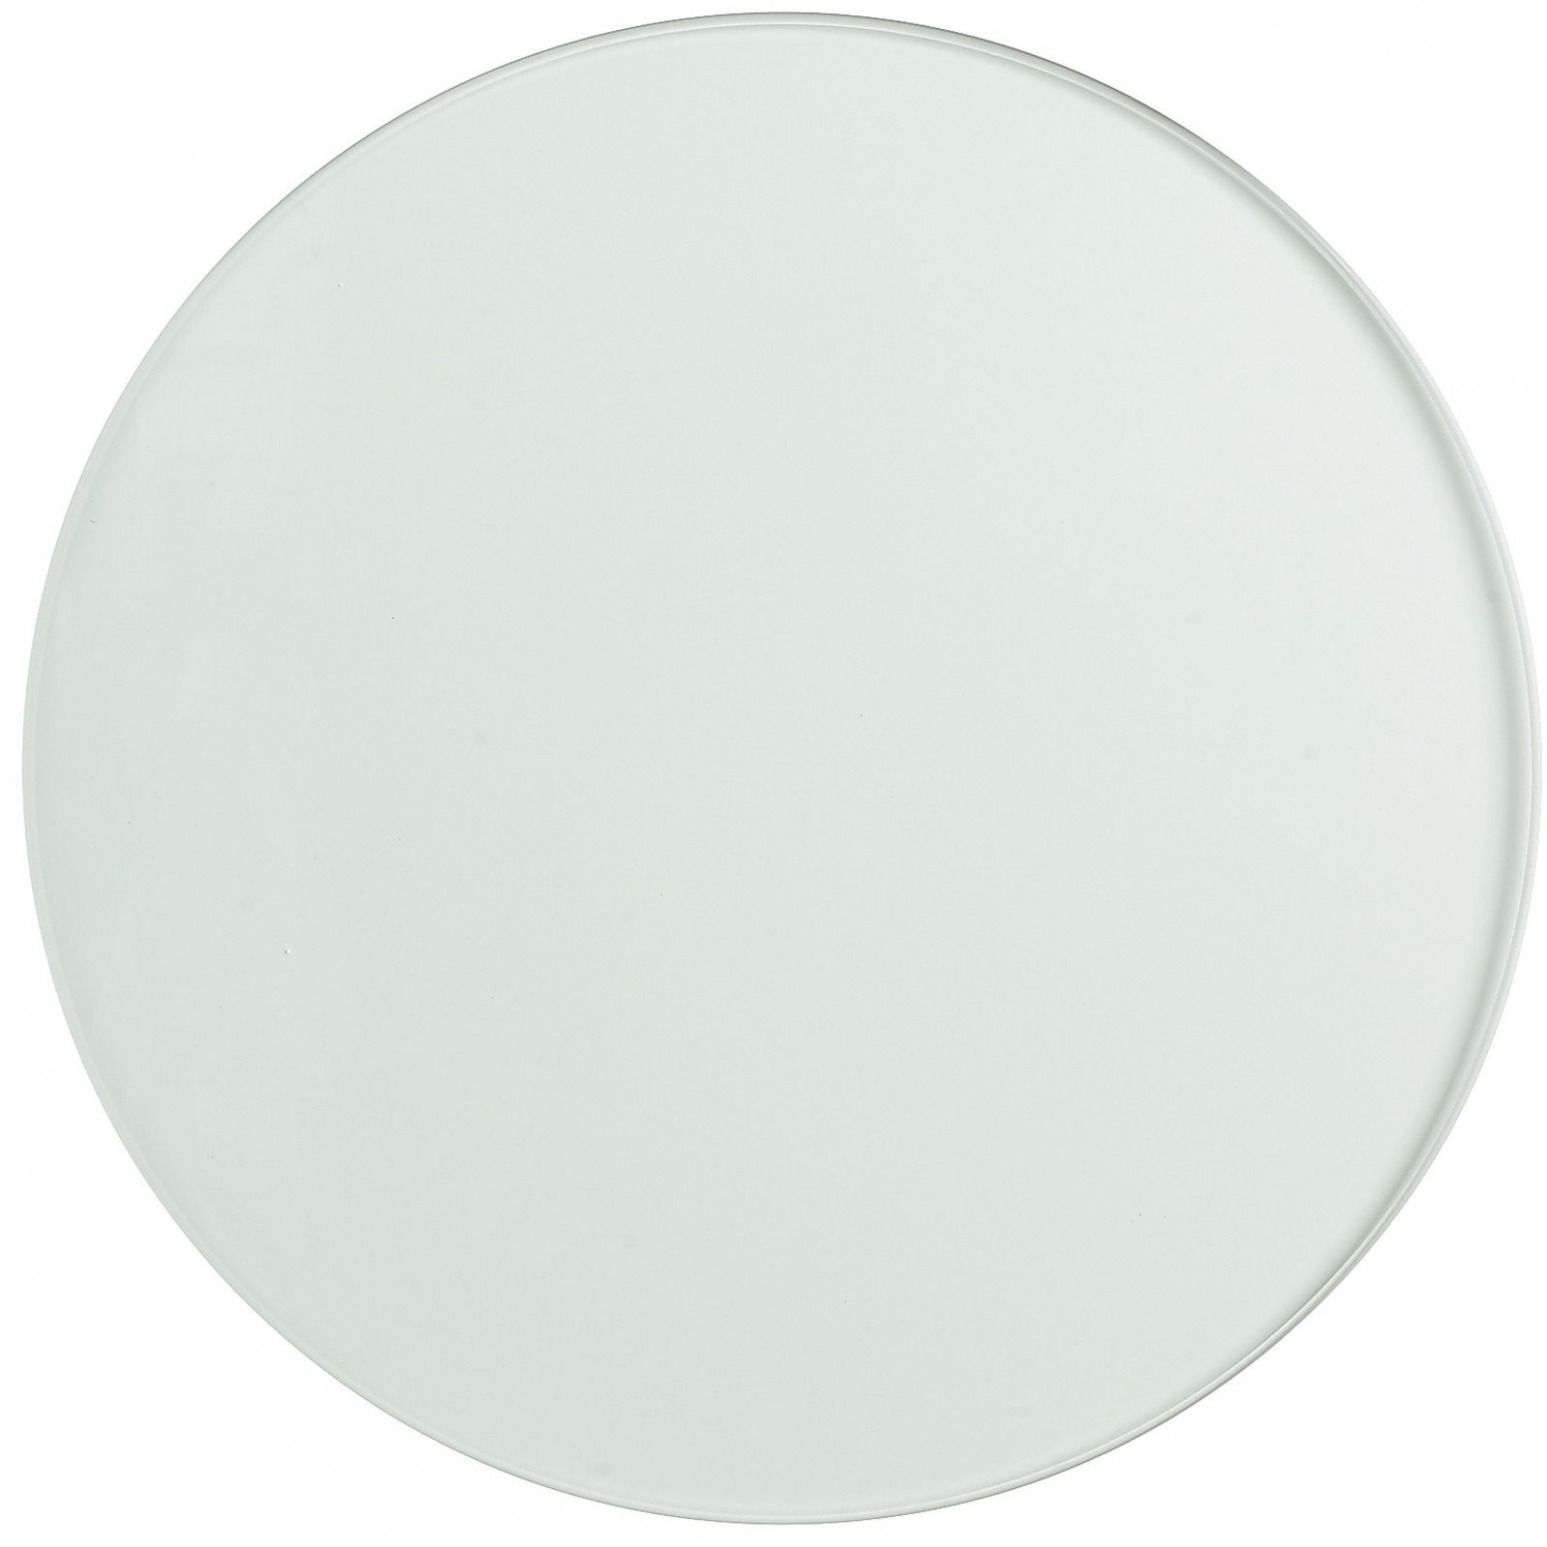 Round glass table top view   inch round glass table top  best paint for wood furniture